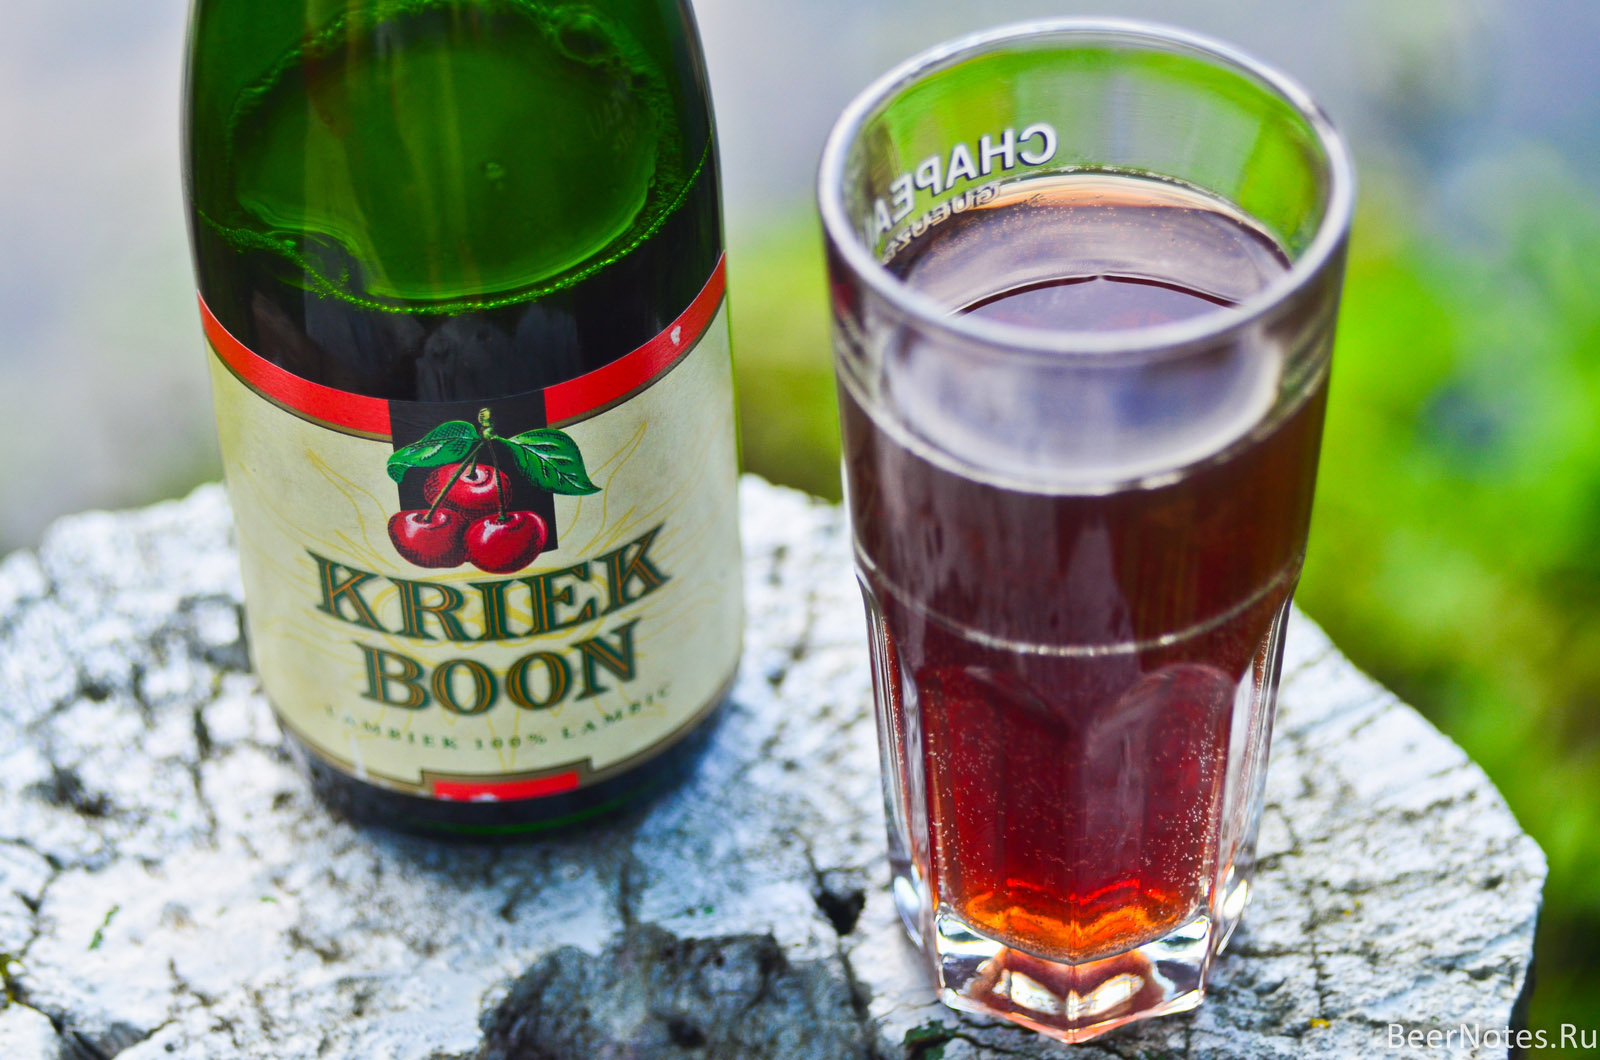 Boon Kriek 2010-4